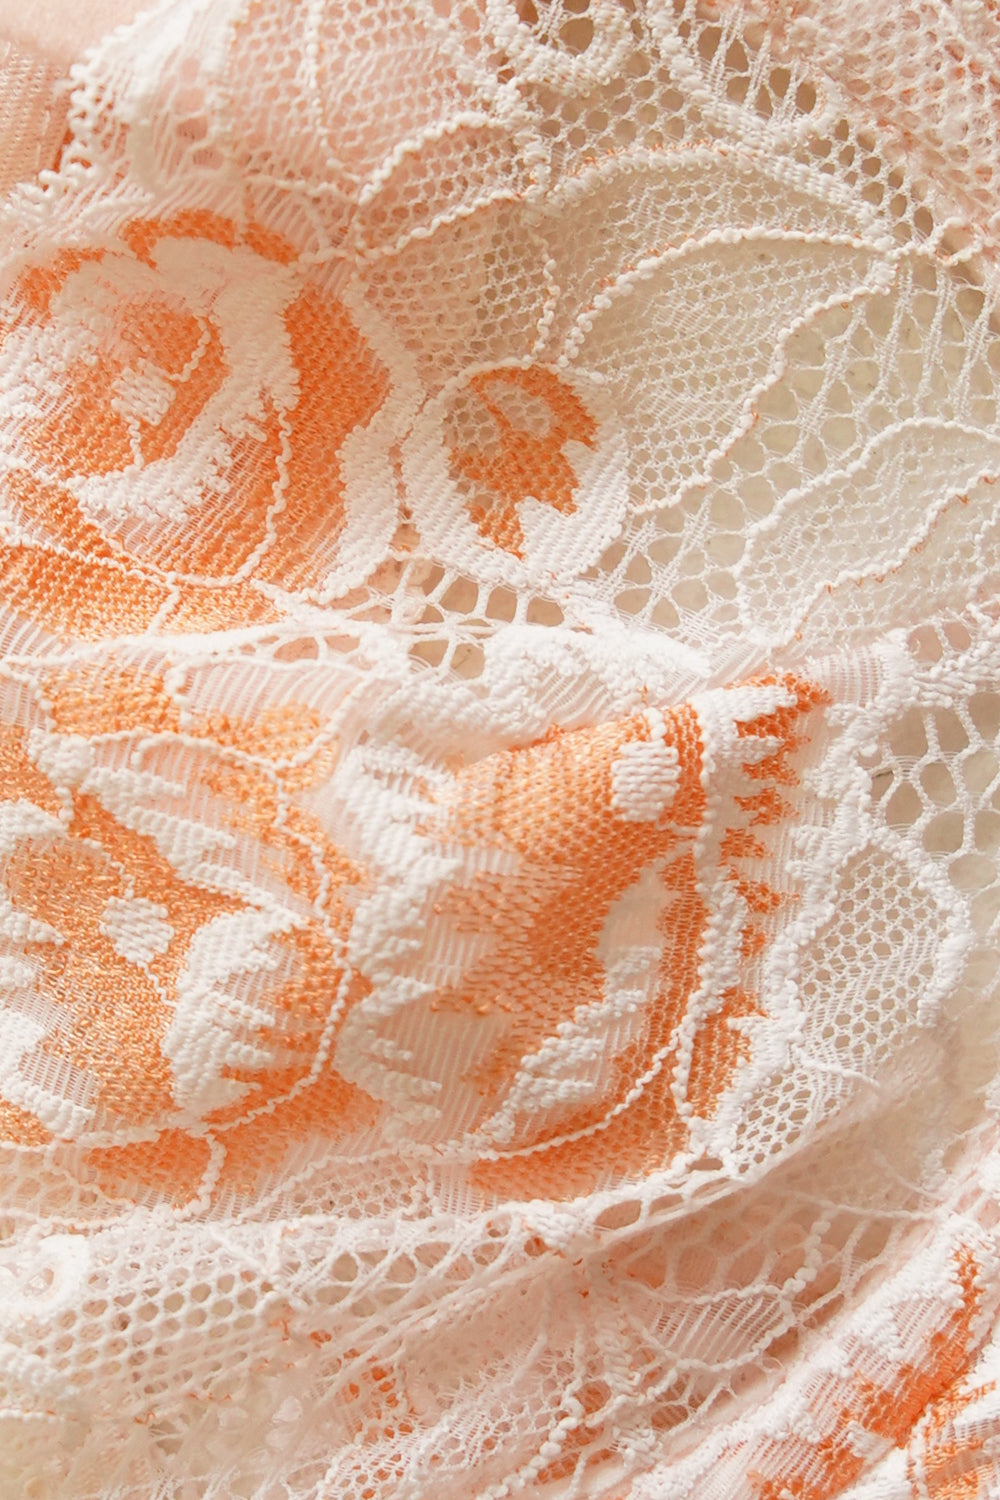 VRG GRL Crave You Lace Bralette // Peach